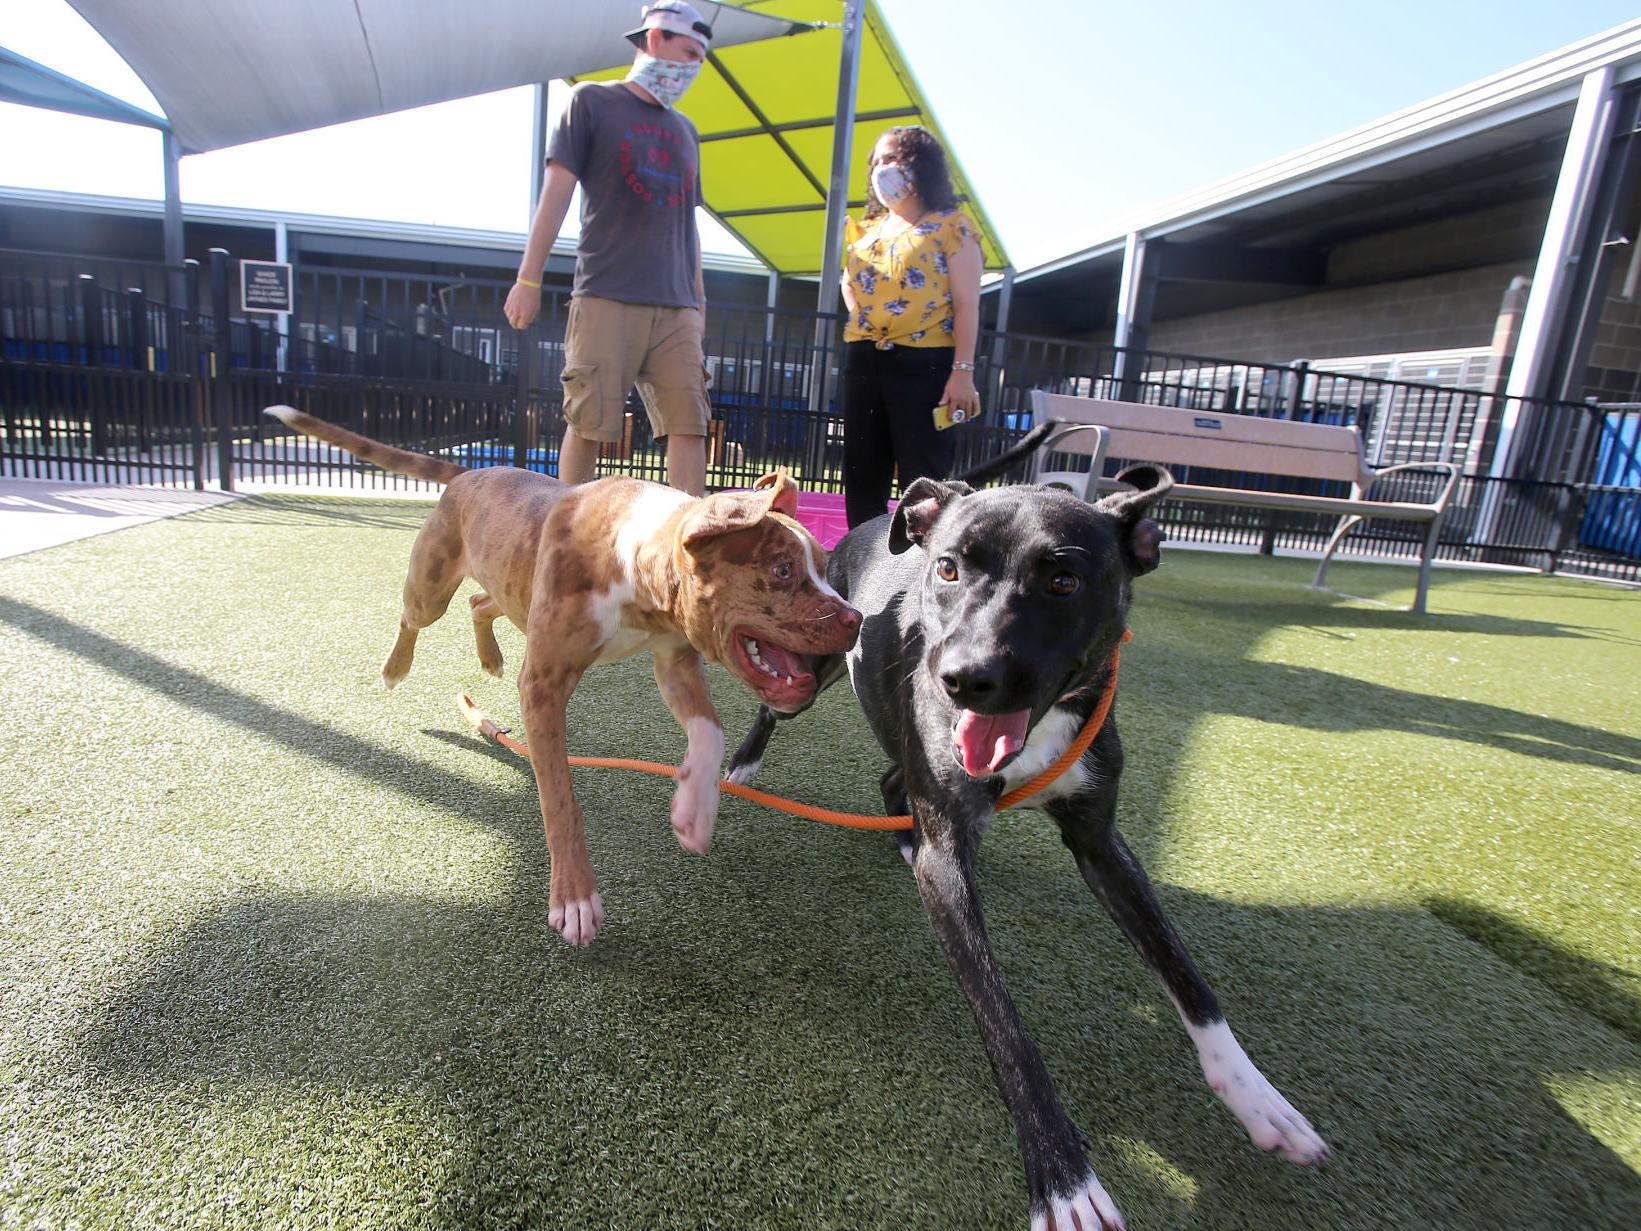 Pilot Group To Fly Waco Shelter Dogs To Idaho For Adoption Local News Wacotrib Com